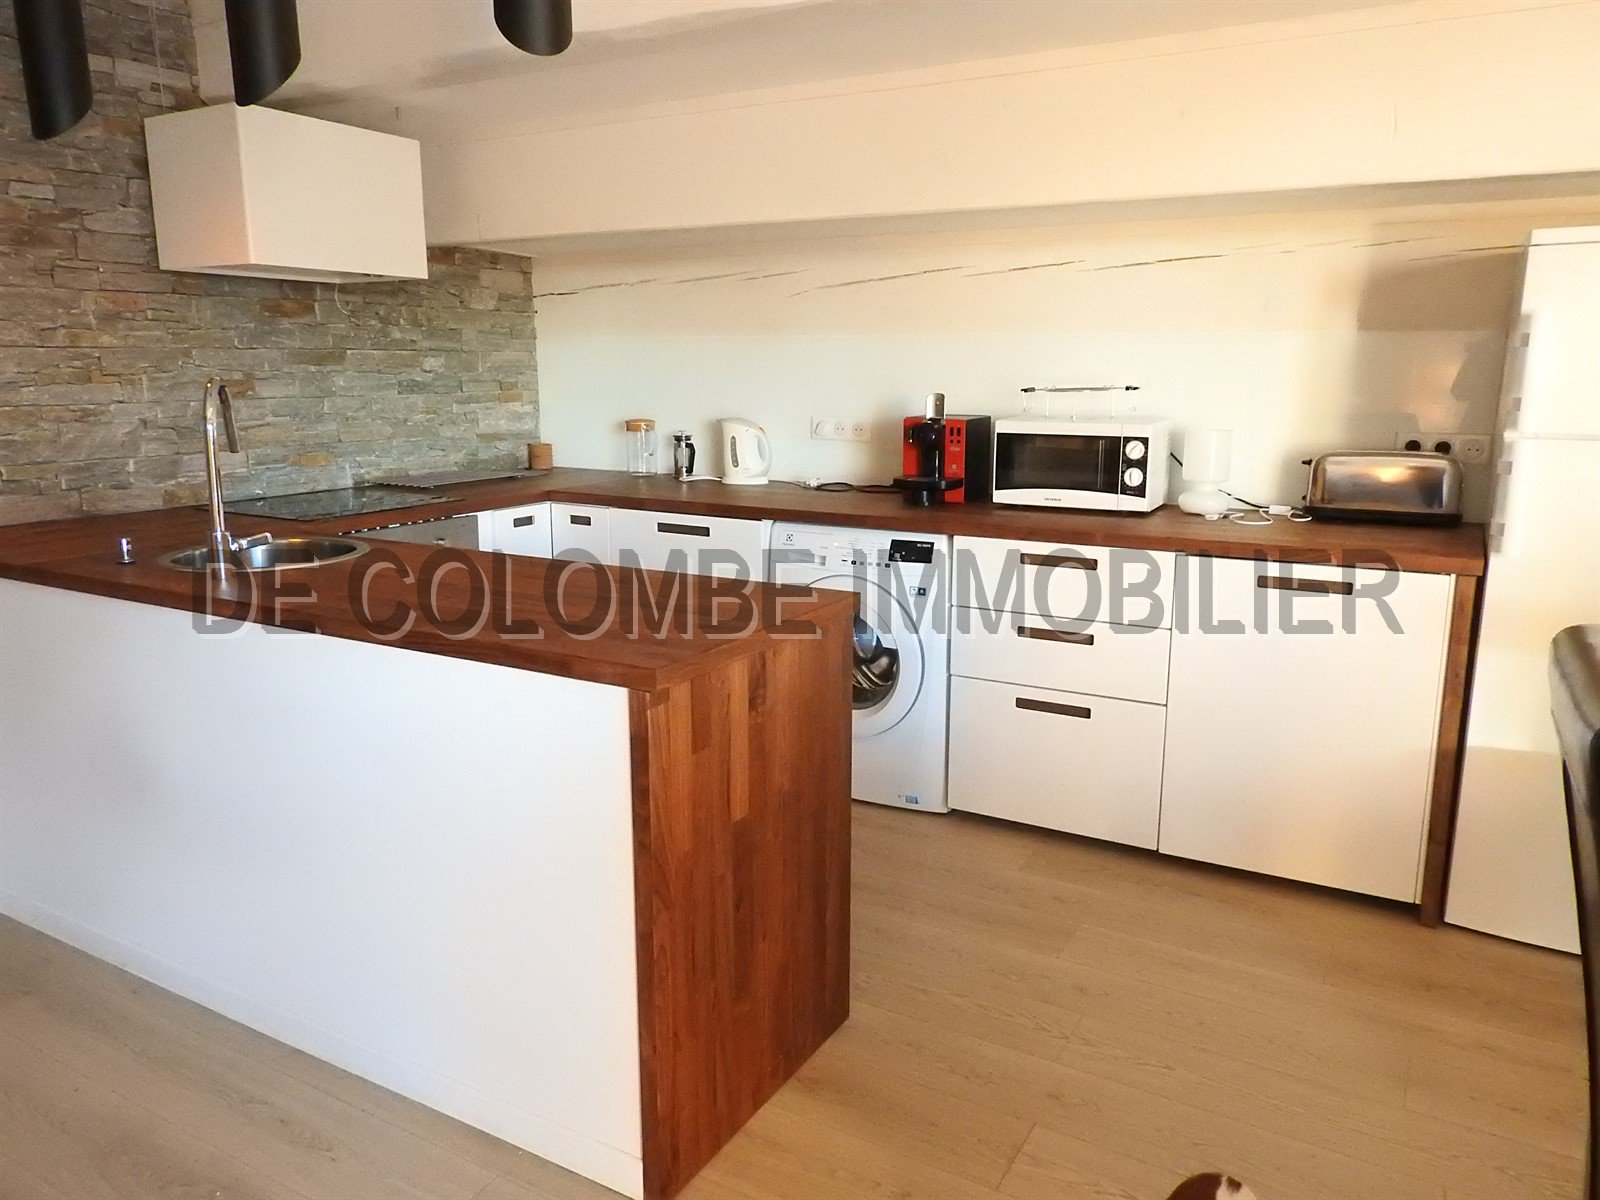 Kitchen, stainless steel, wood floors